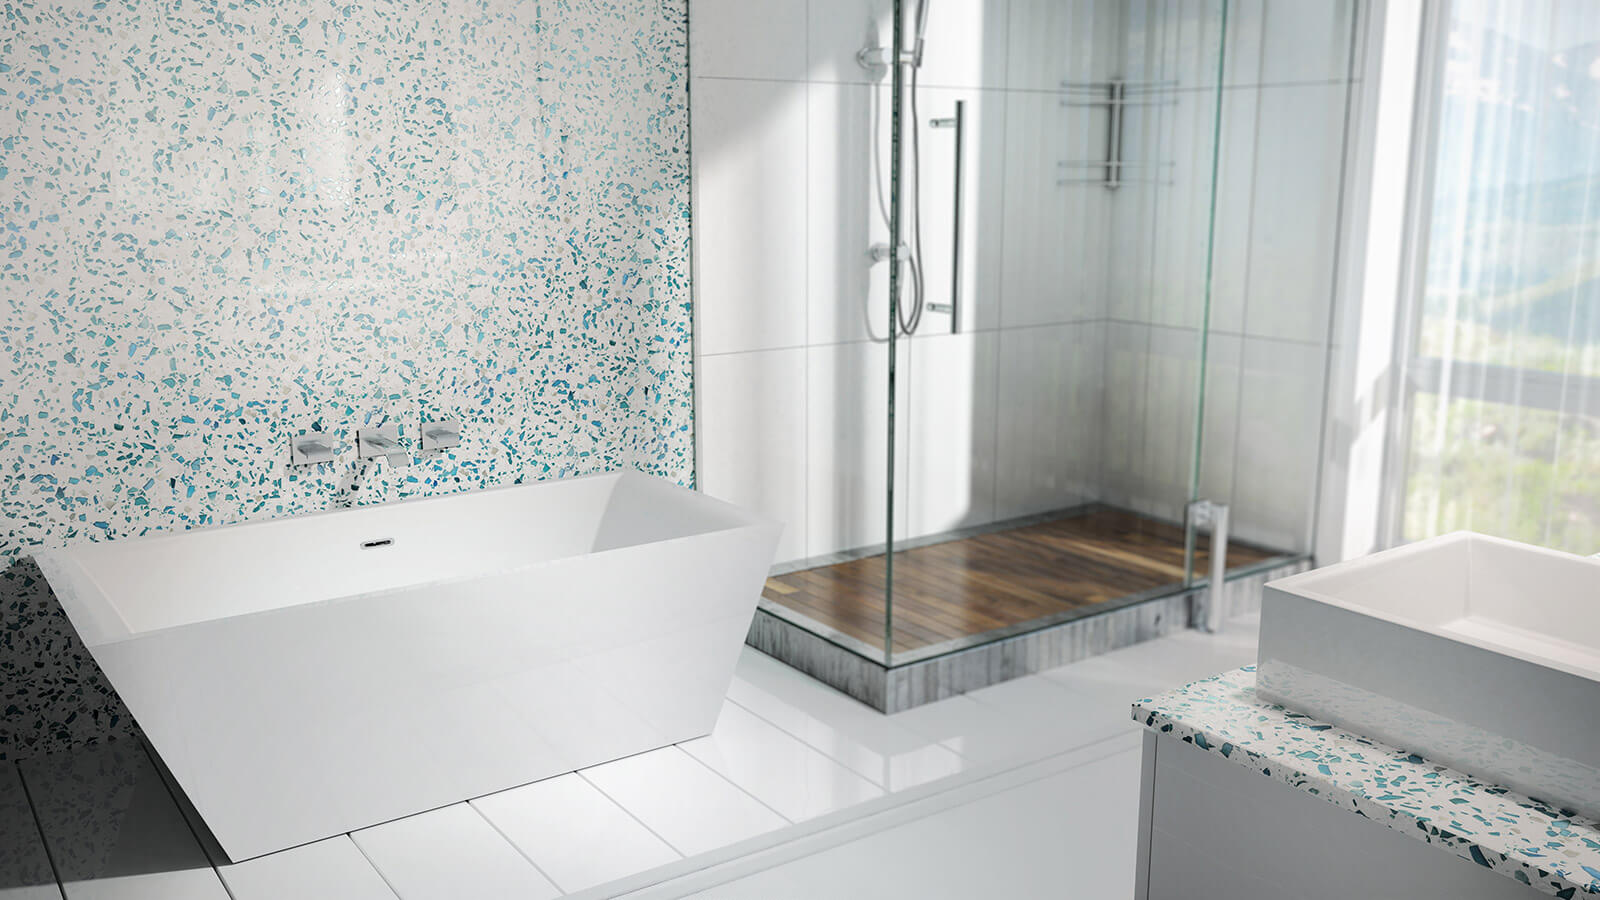 Vetrazzo — Recycled Glass Countertops, Mosaics, Tiles, Flooring and ...